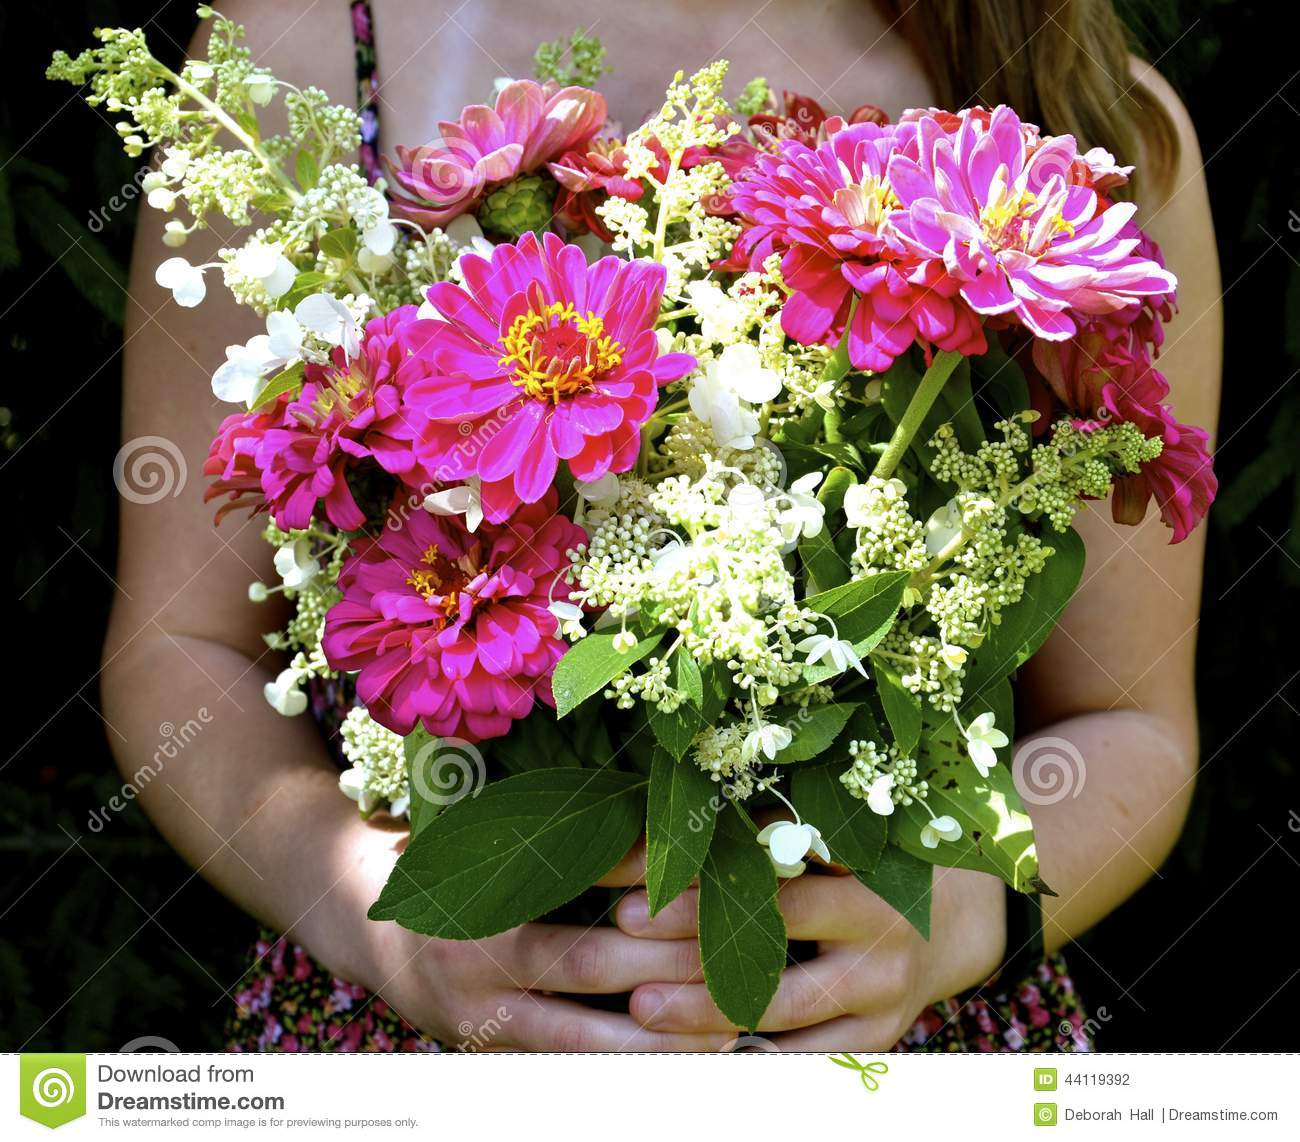 For you my friend stock photo image of zinninis picked 44119392 for you my friend izmirmasajfo